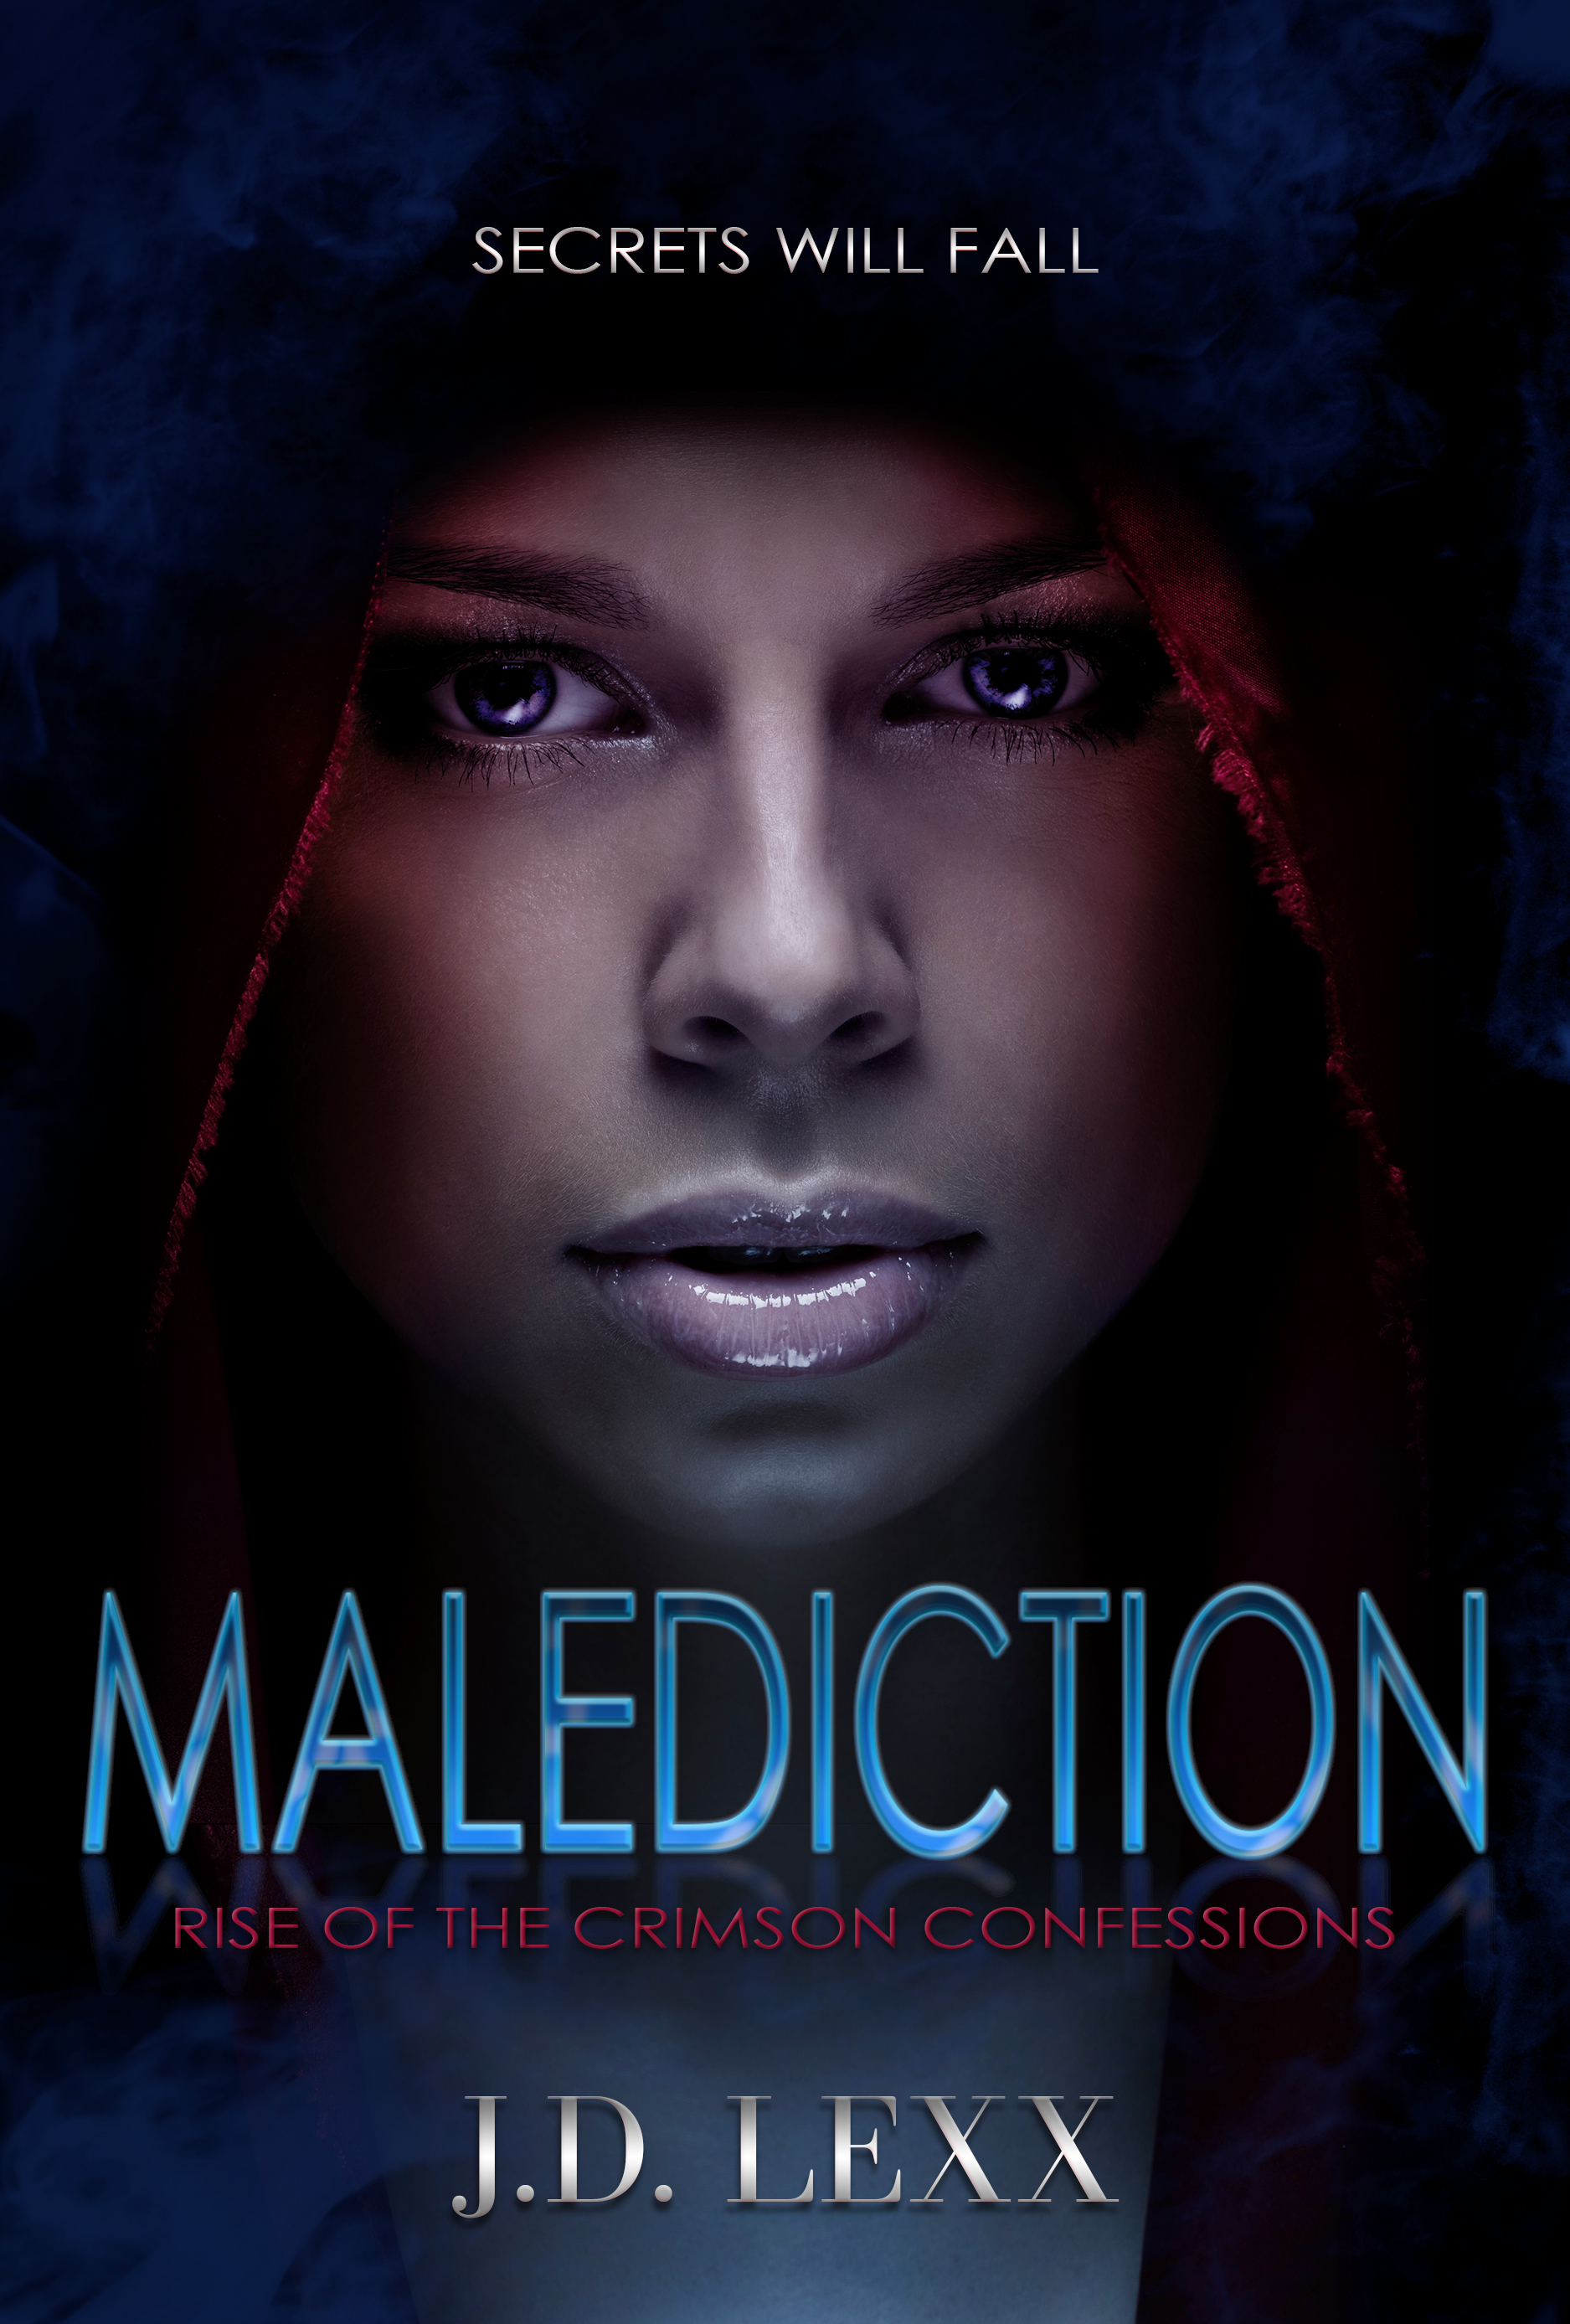 Malediction-2 FullRes JPG.jpg